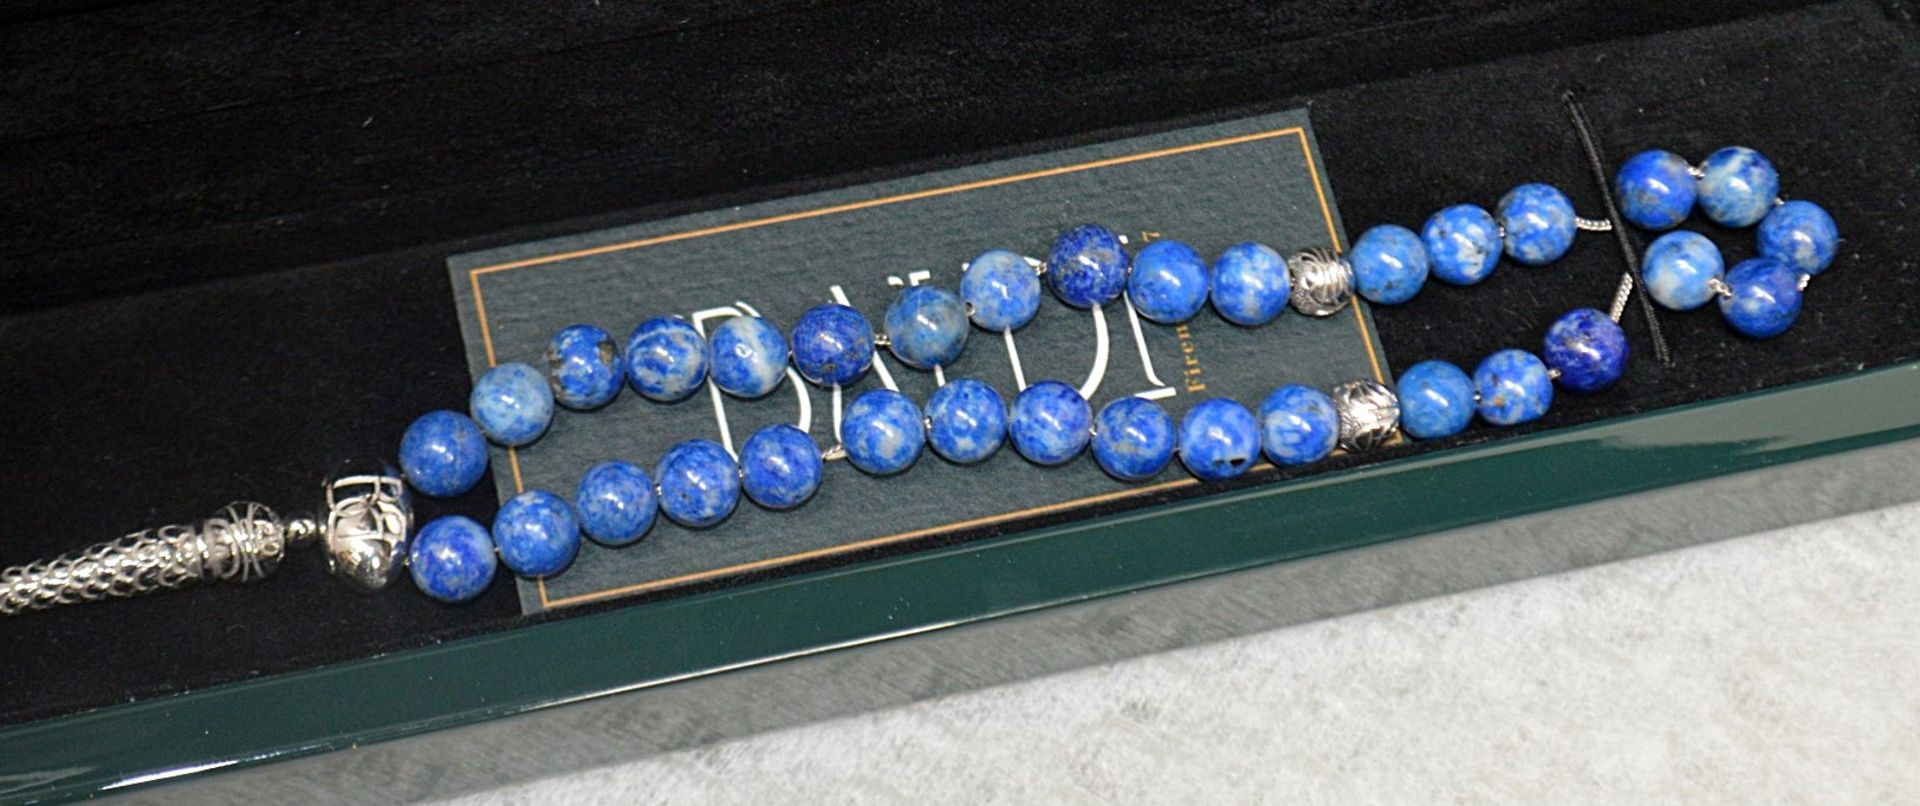 1 x BALDI 'Home Jewels' Italian Hand-crafted Artisan MISBAHA Prayer Beads In Blue Lapis Gemstone And - Image 3 of 6